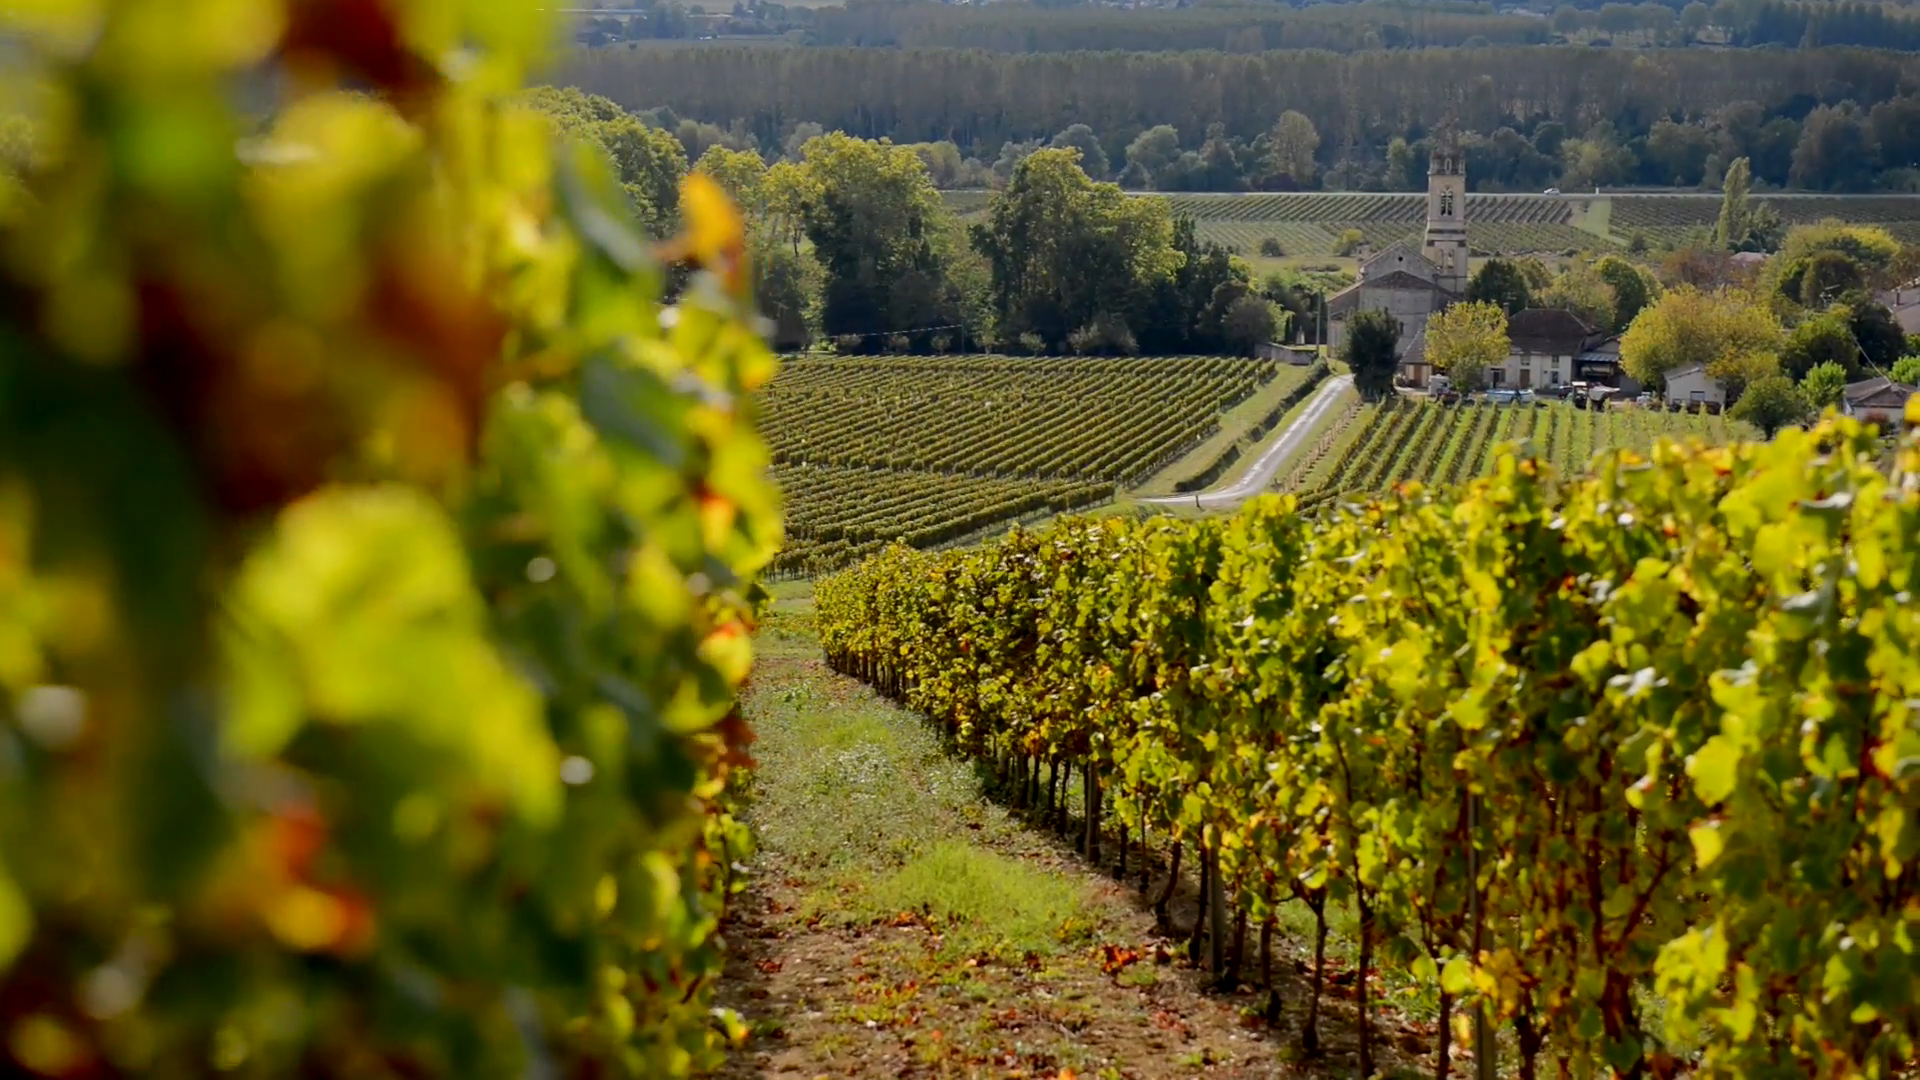 bordeaux-vineyard-in-autumn_7k4ipwwu__F0000